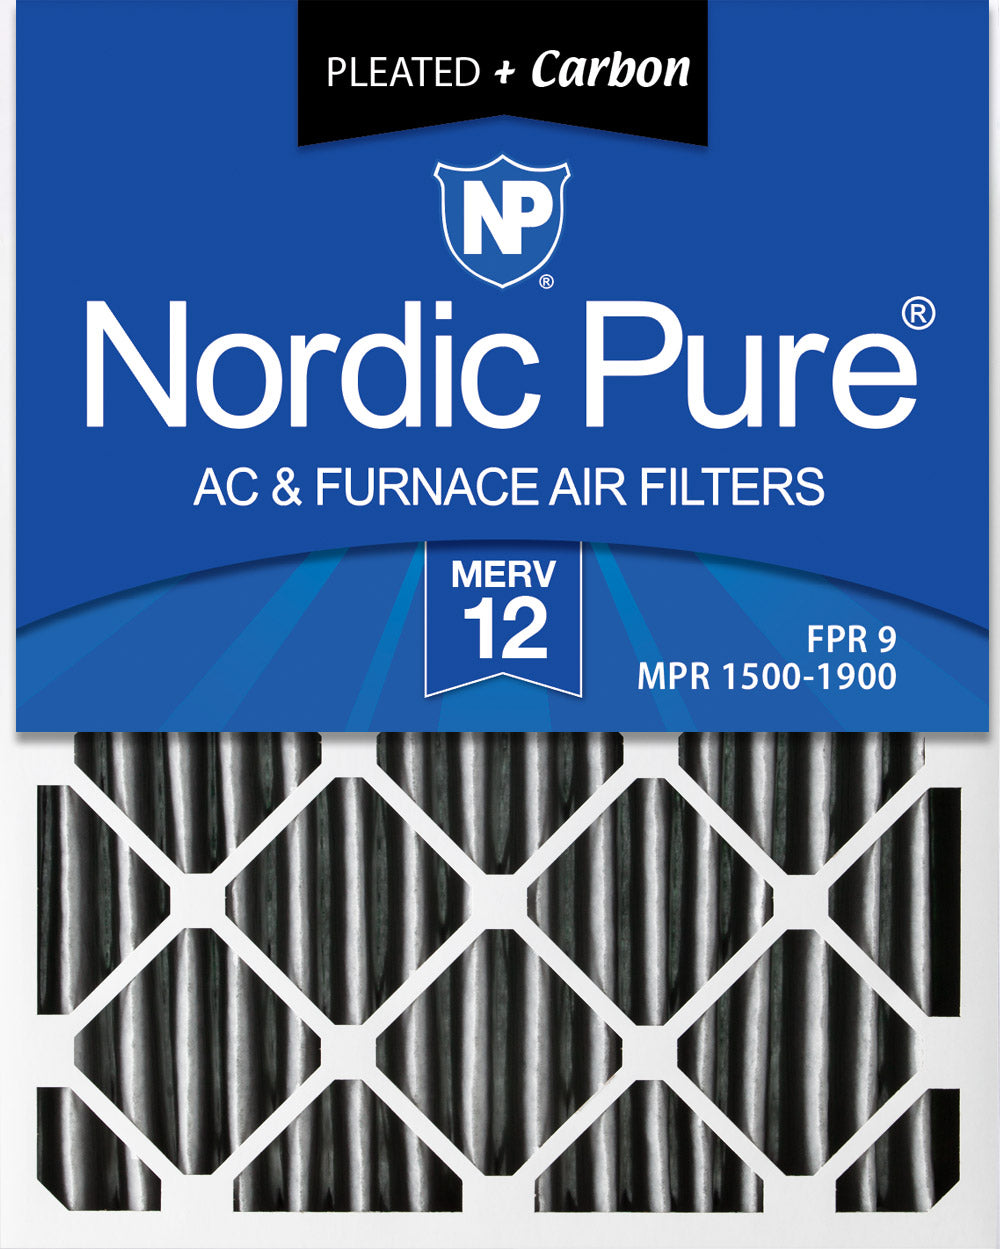 16x20x4 (3 5/8) Furnace Air Filters MERV 12 Pleated Plus Carbon 2 Pack